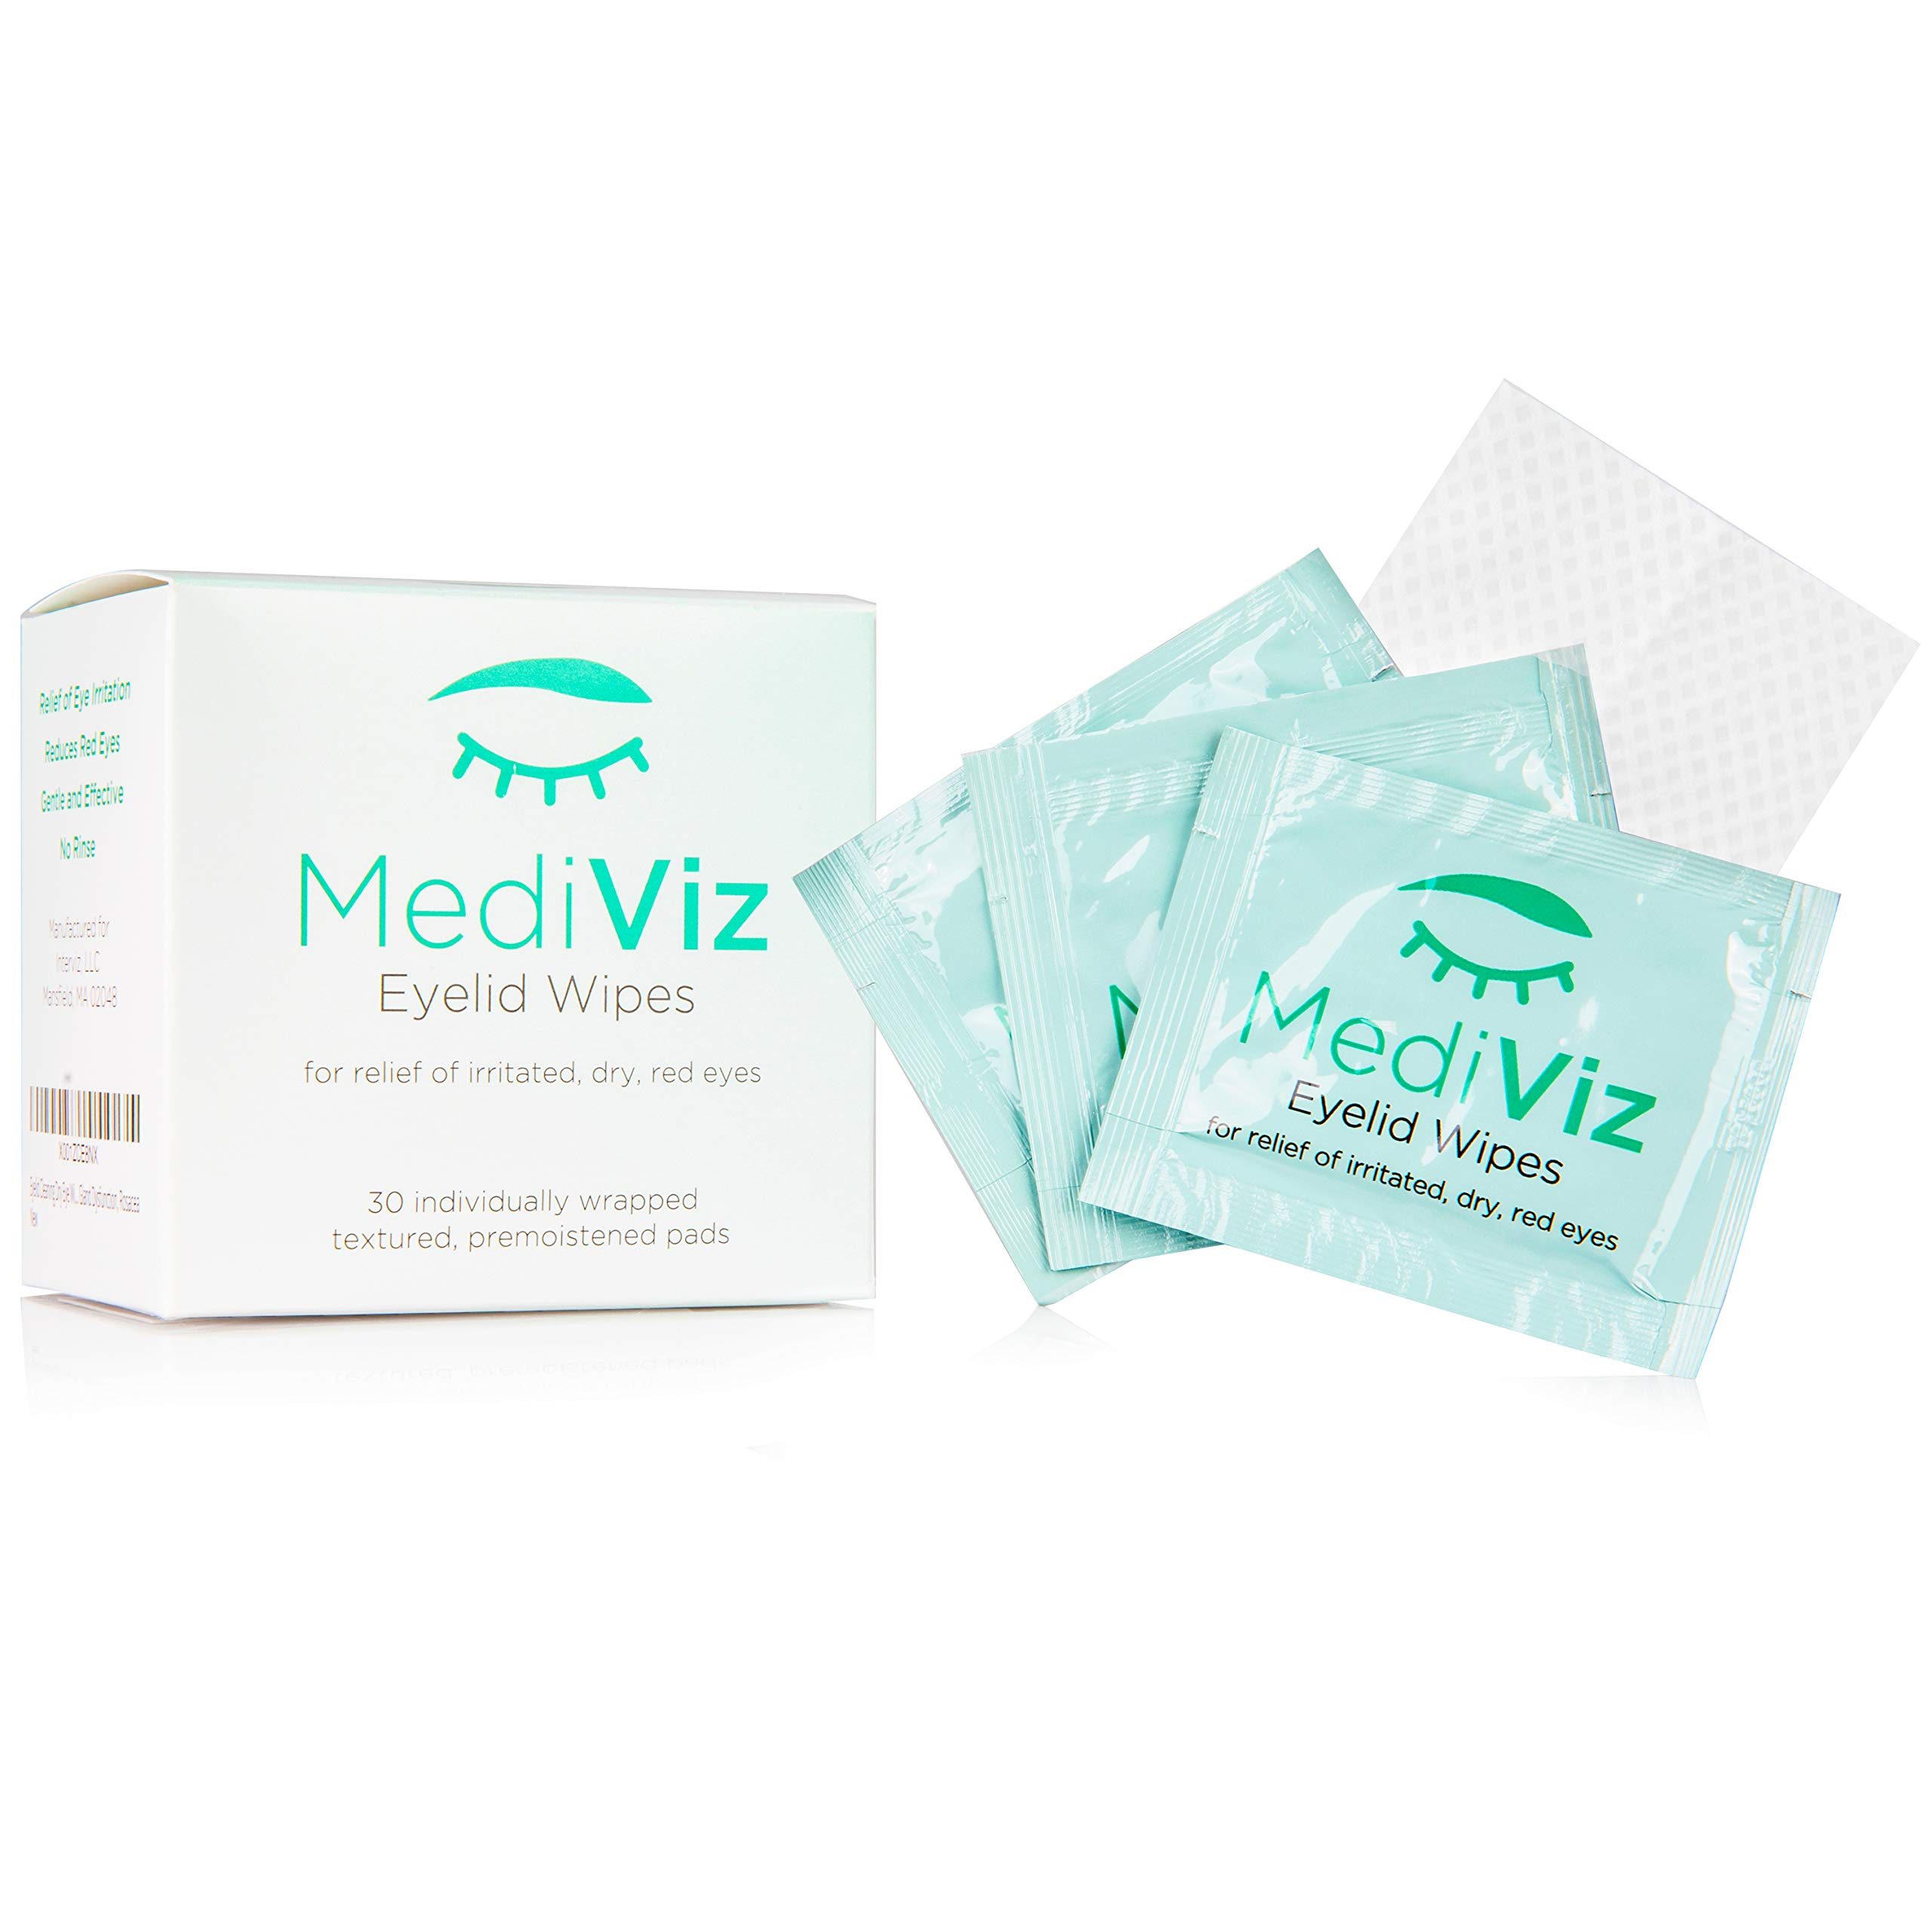 Eyelid Cleaning Wipes - Mediviz, Exfoliating, Purified, Hypoallergenic, Helps Avoid Crusty Eyelashes, Eyelid Bumps, Ocular Allergies, Demodex Mites, Clogged Meibomian Glands, Inflamed Skin Conditions